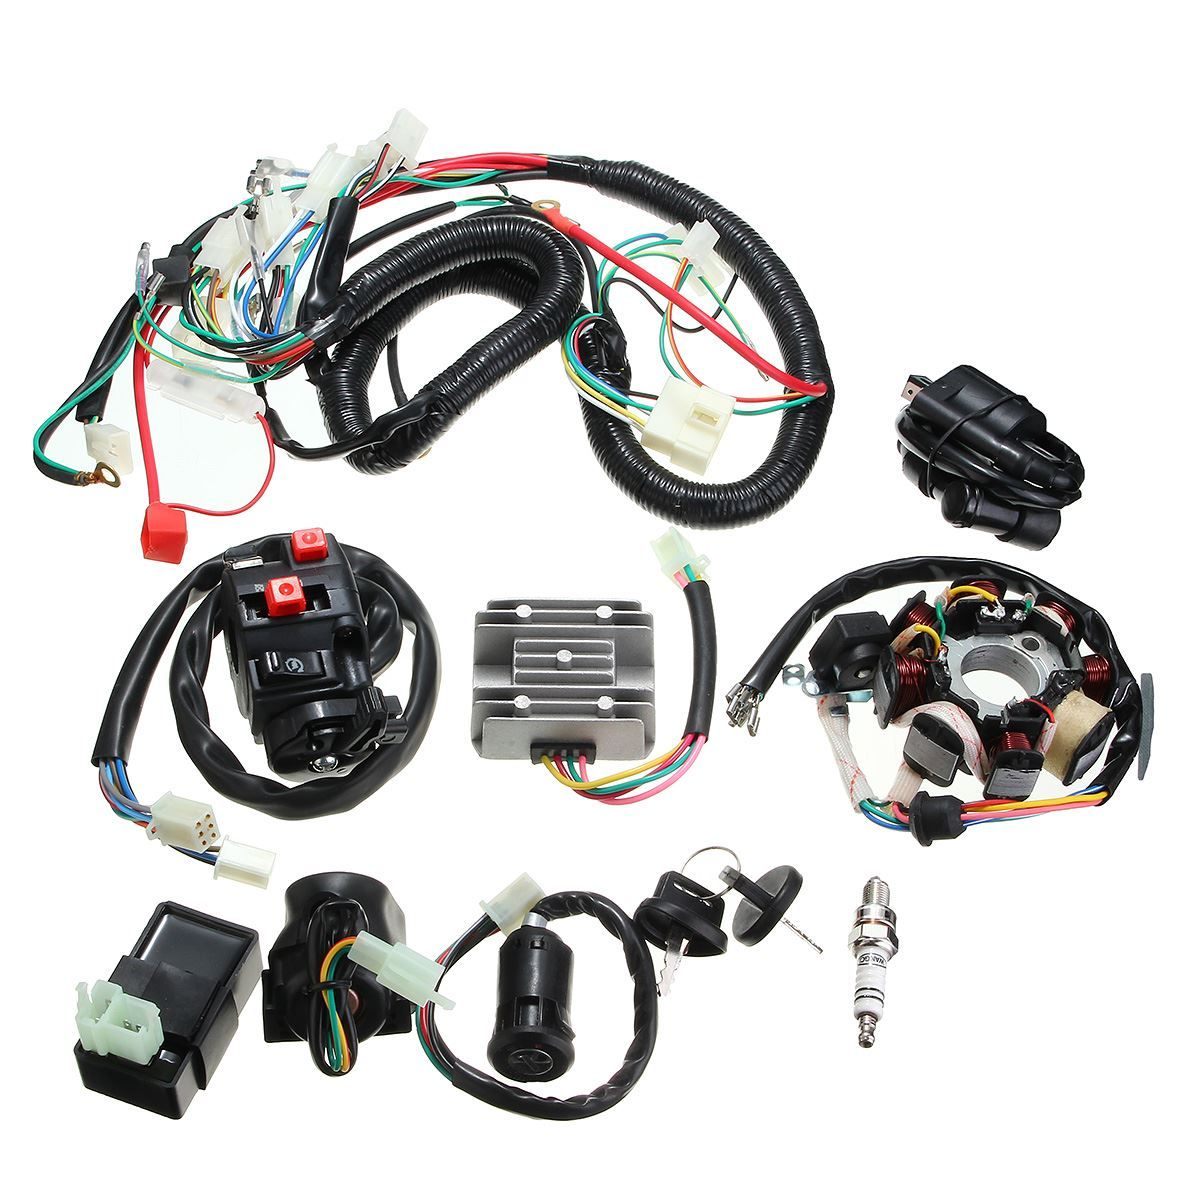 hight resolution of 1 set quad electric cdi coil wire harness stator assembly wiring set for 125 150 200 250cc push rod engine affiliate